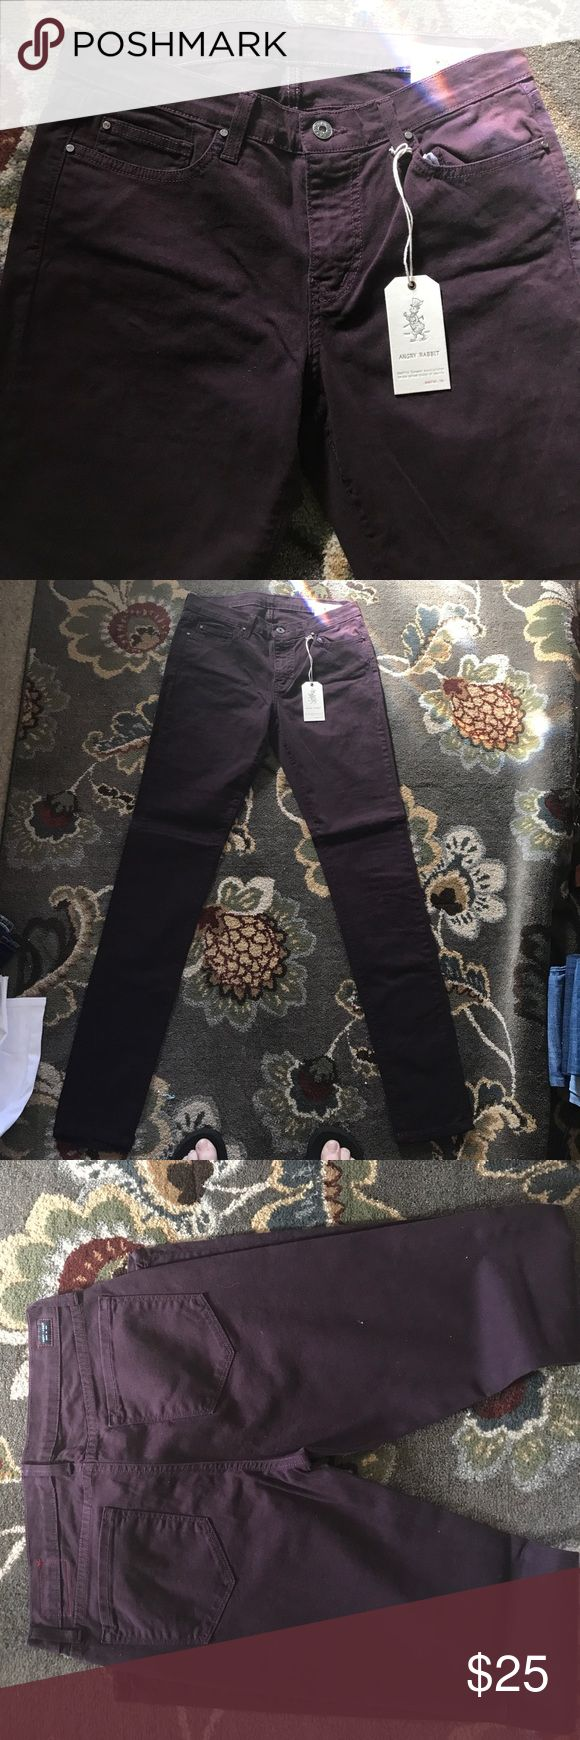 Angry Rabbit Pants 98% Cottonial Gordon 2% Spandex size 30/11 color is called Sugar Maroon Skinny Jeans to me there a plum or Grape color Angry Rabbit Pants Skinny